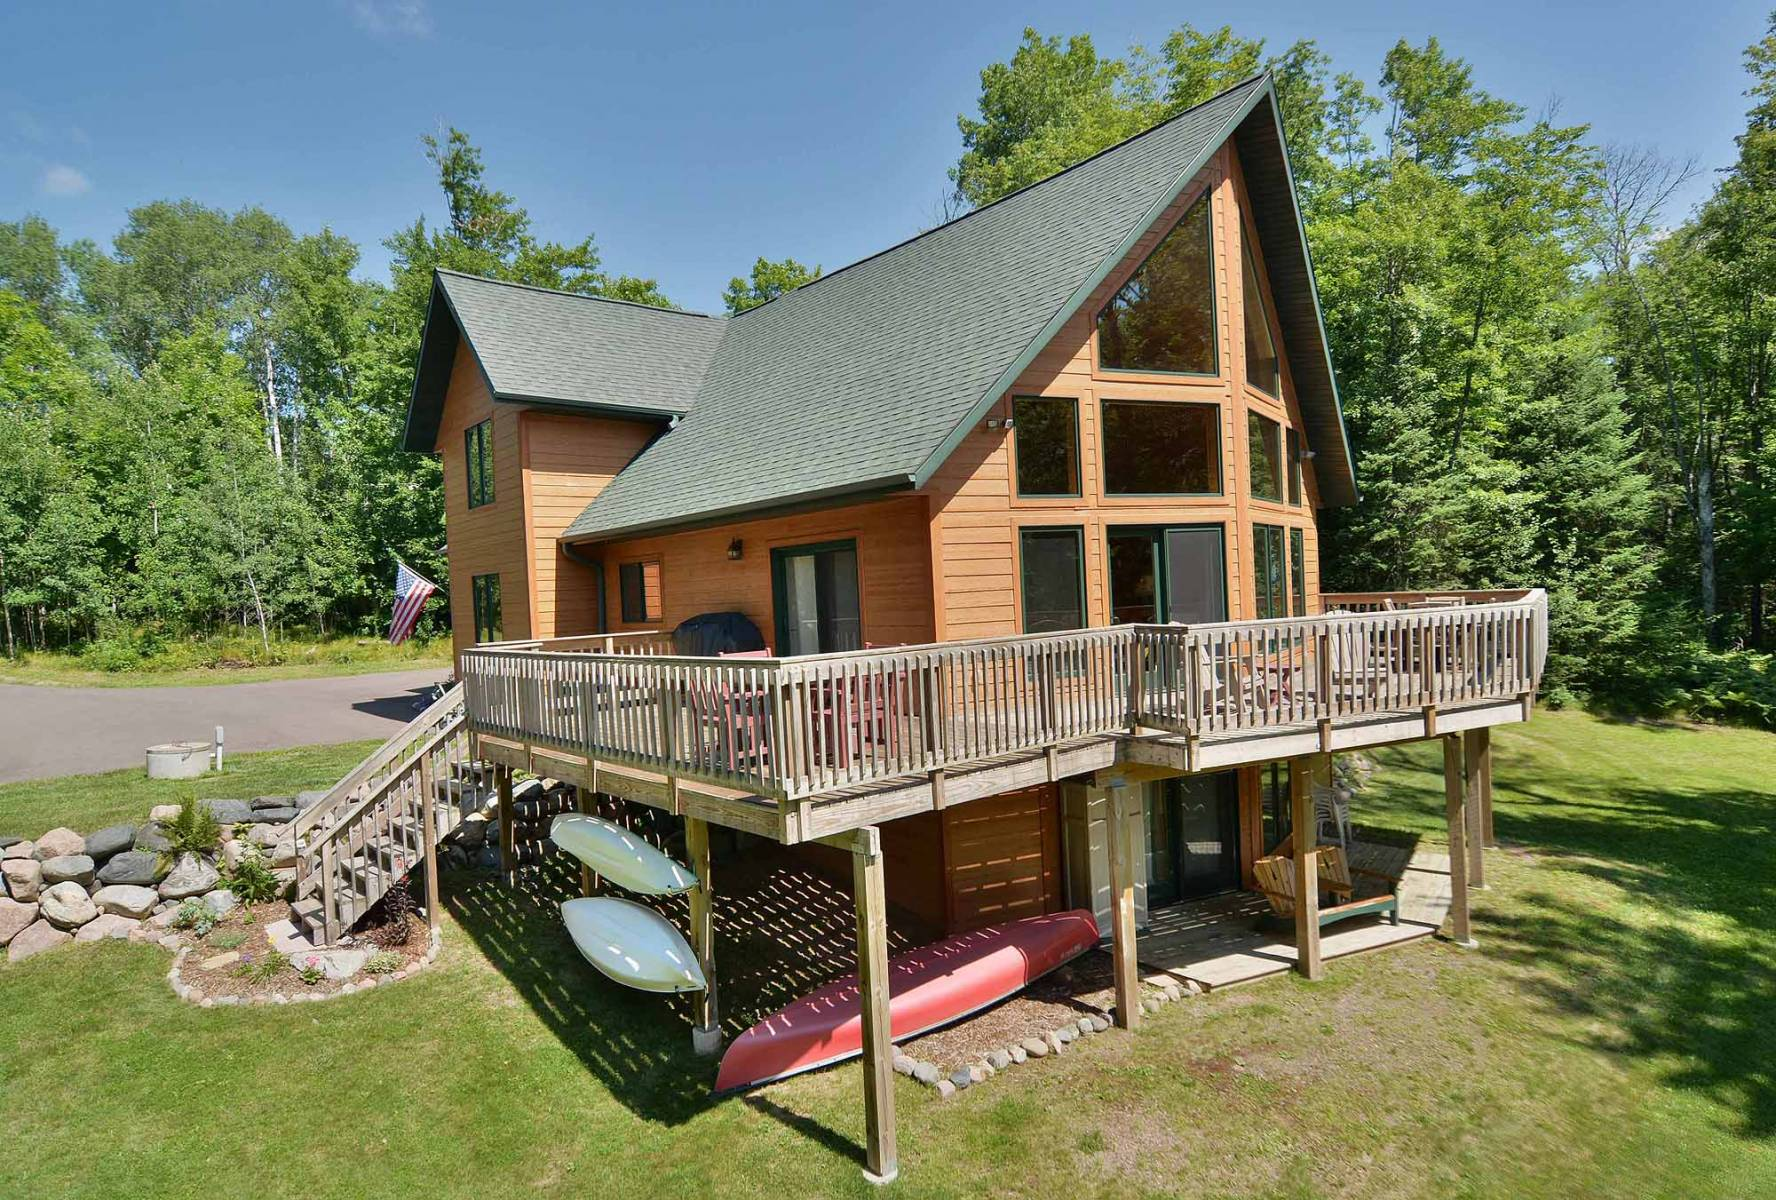 Swell Lodging In Clam Lake Wisconsin Northern Wisconsin Beutiful Home Inspiration Aditmahrainfo